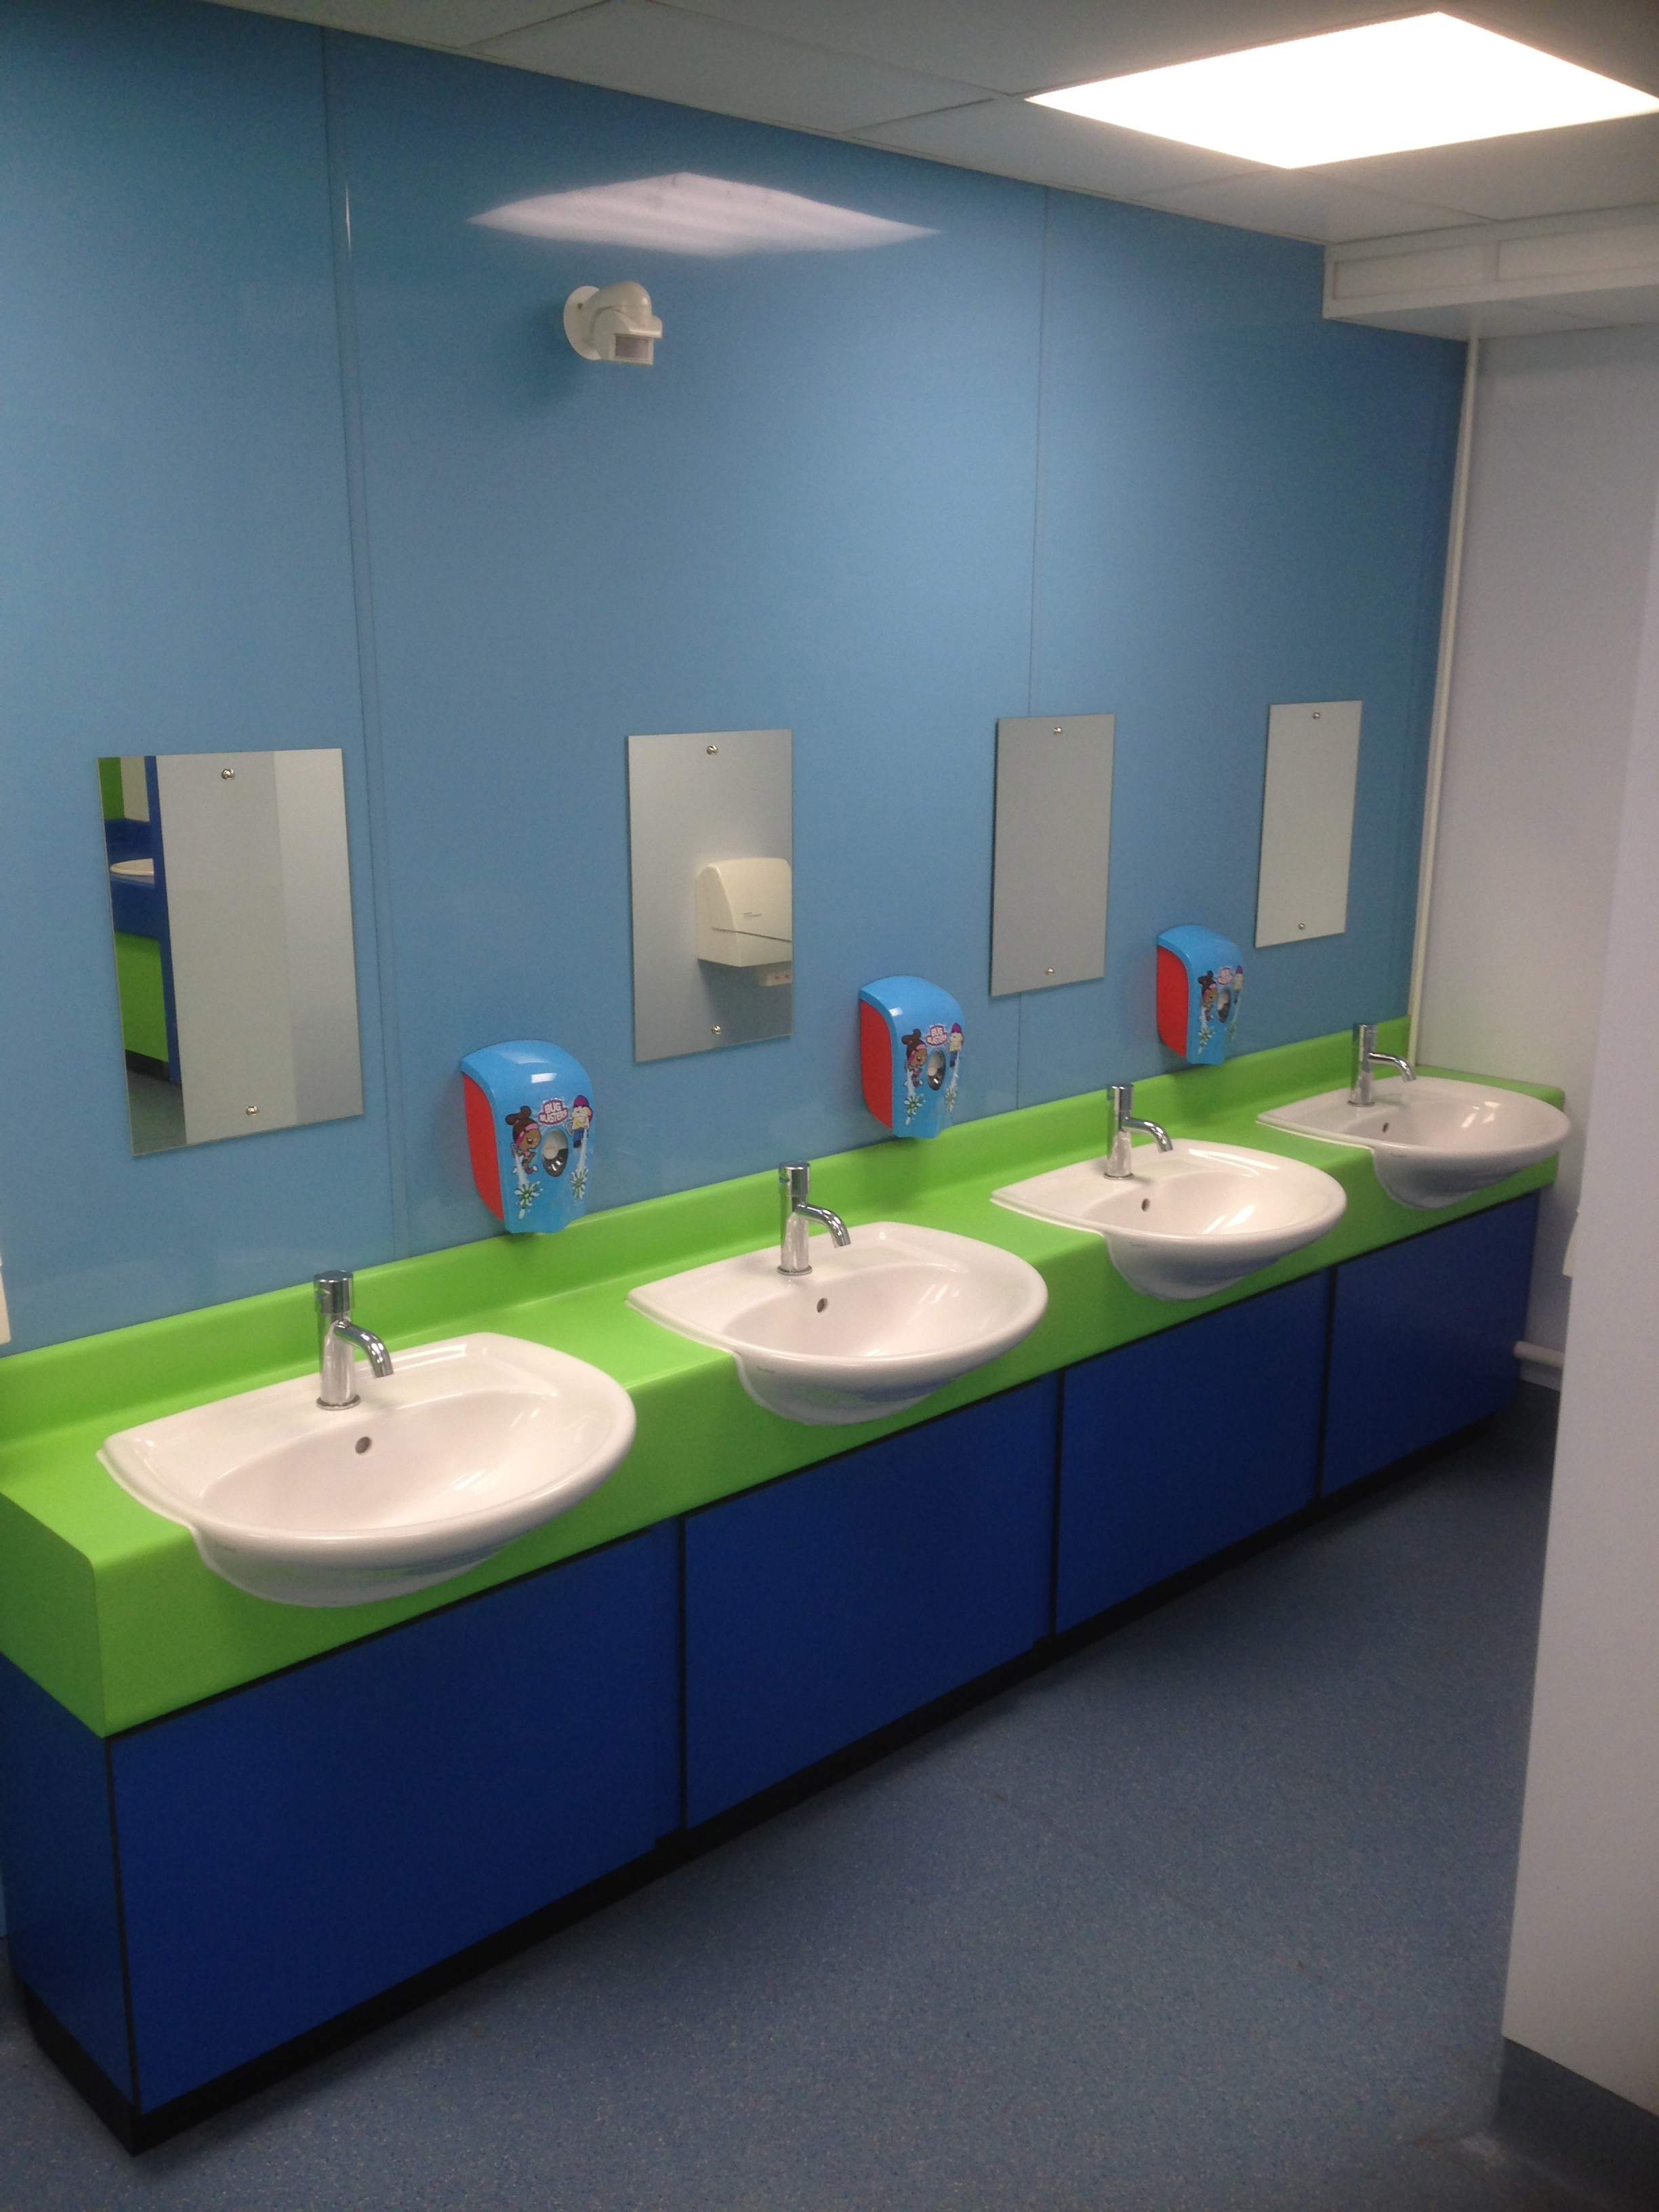 Hygienic Wall Cladding - Province Building Services Ltd